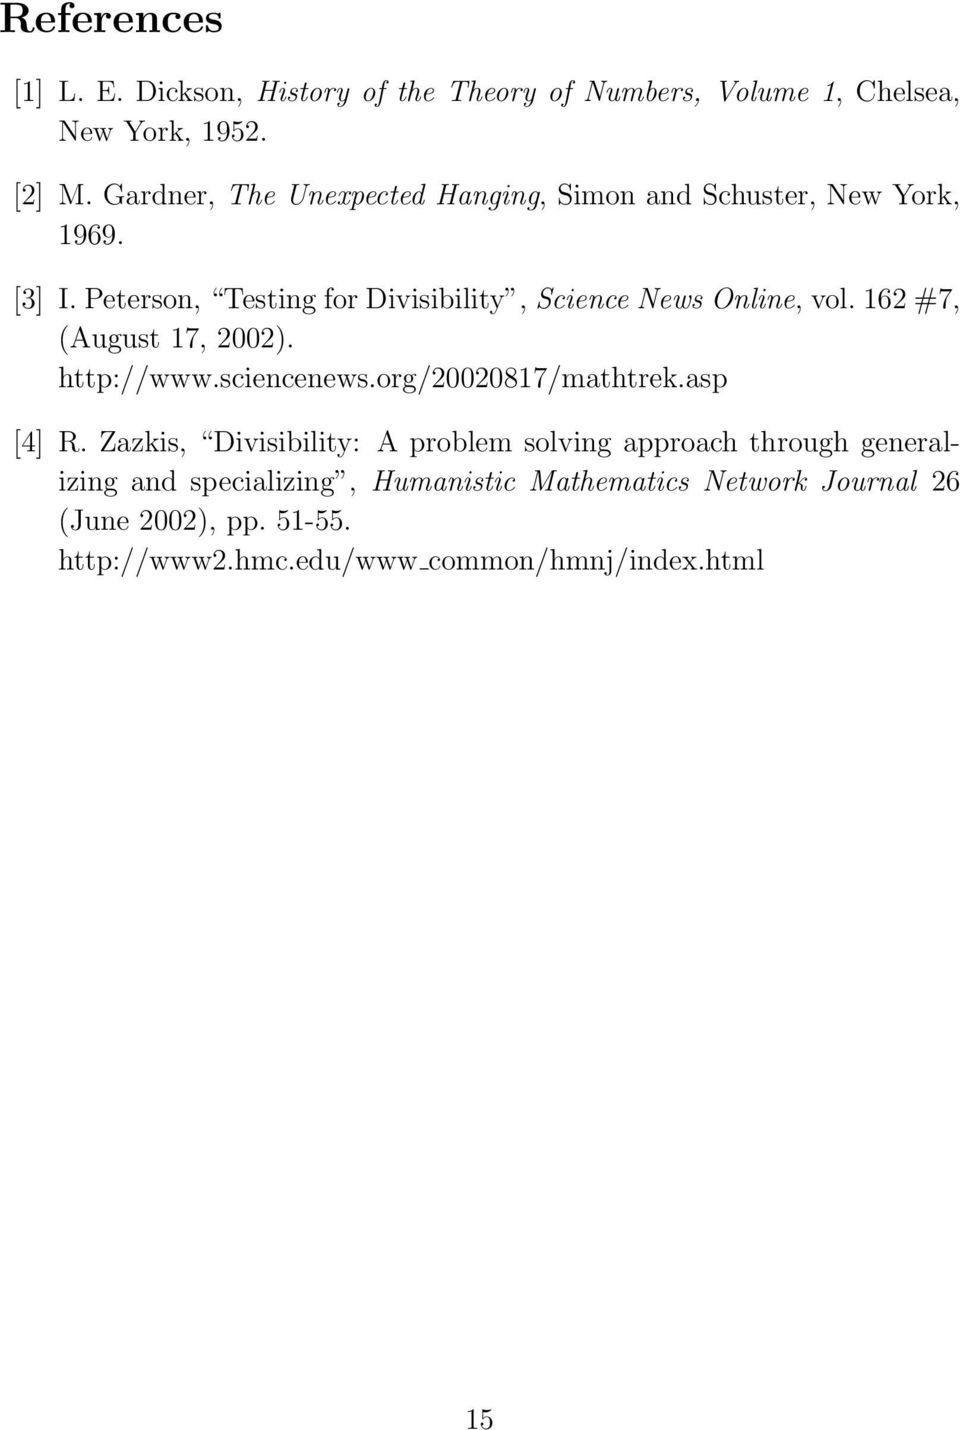 Peterson, Testing for Divisibility, Science News Online, vol. 162 #7, (August 17, 2002). http://www.sciencenews.